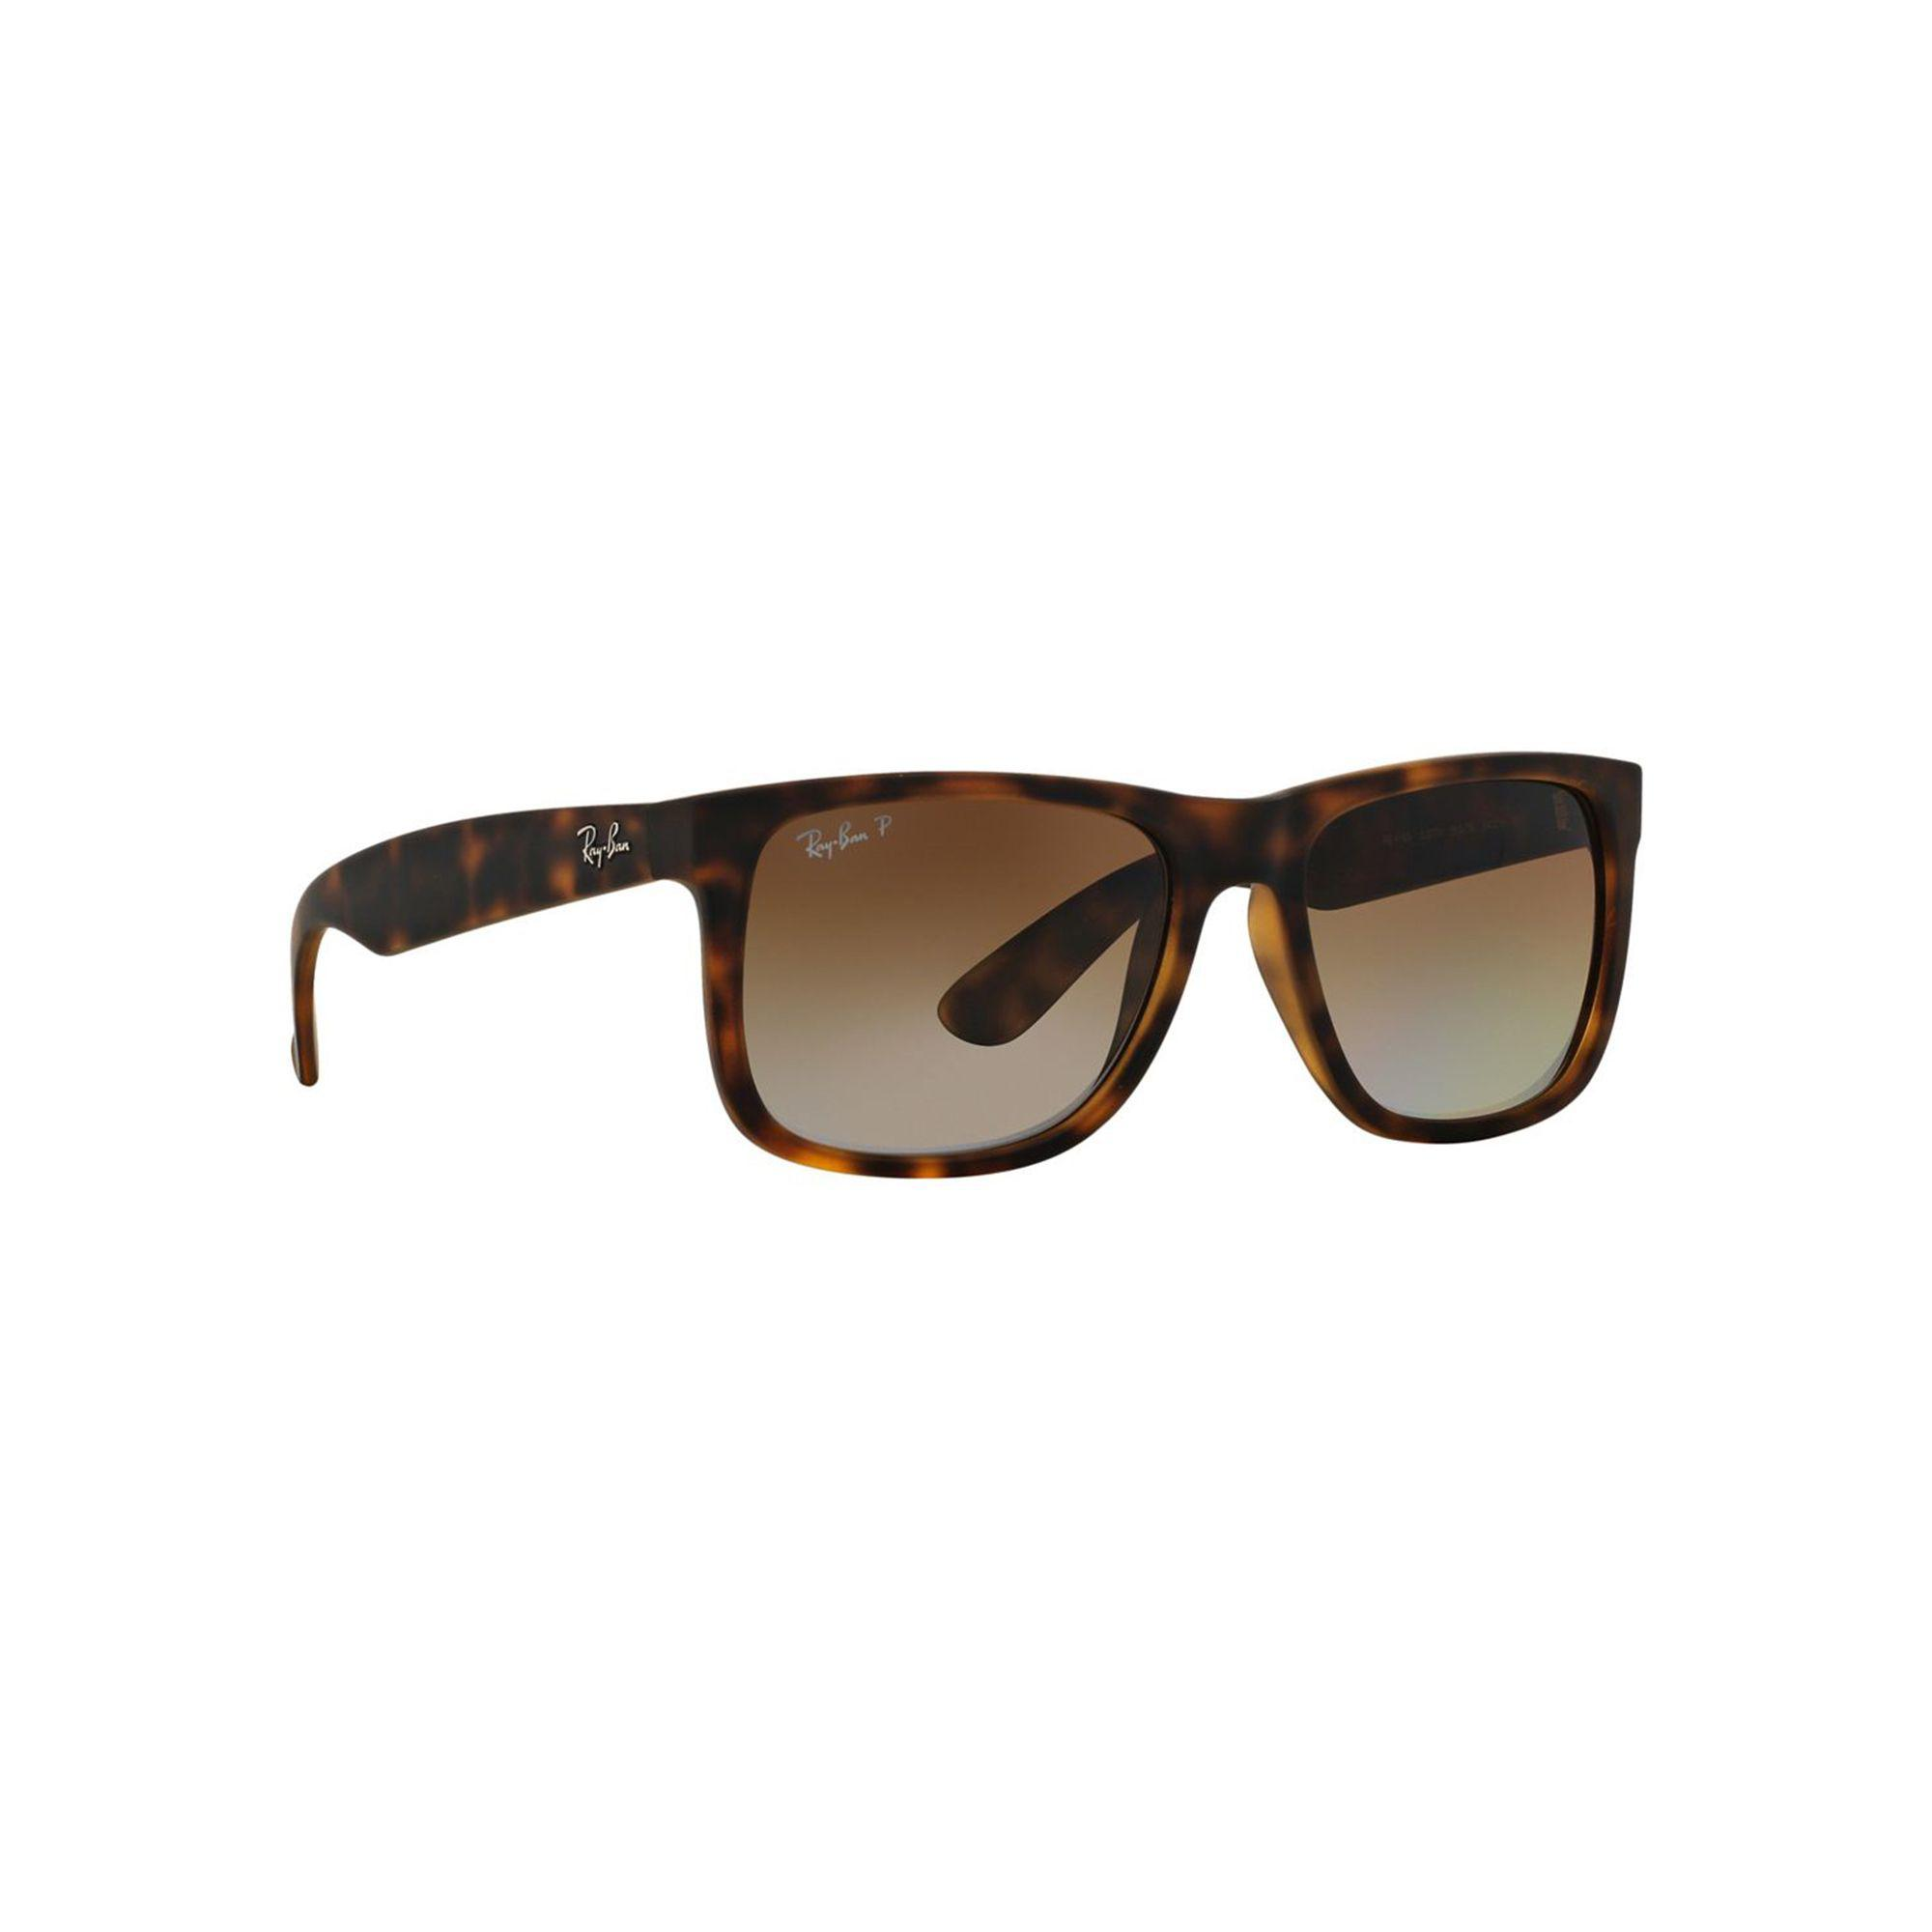 6d3d20d5f2 Ray-Ban Brown  justin  Rb4165 Sunglasses in Brown for Men - Lyst